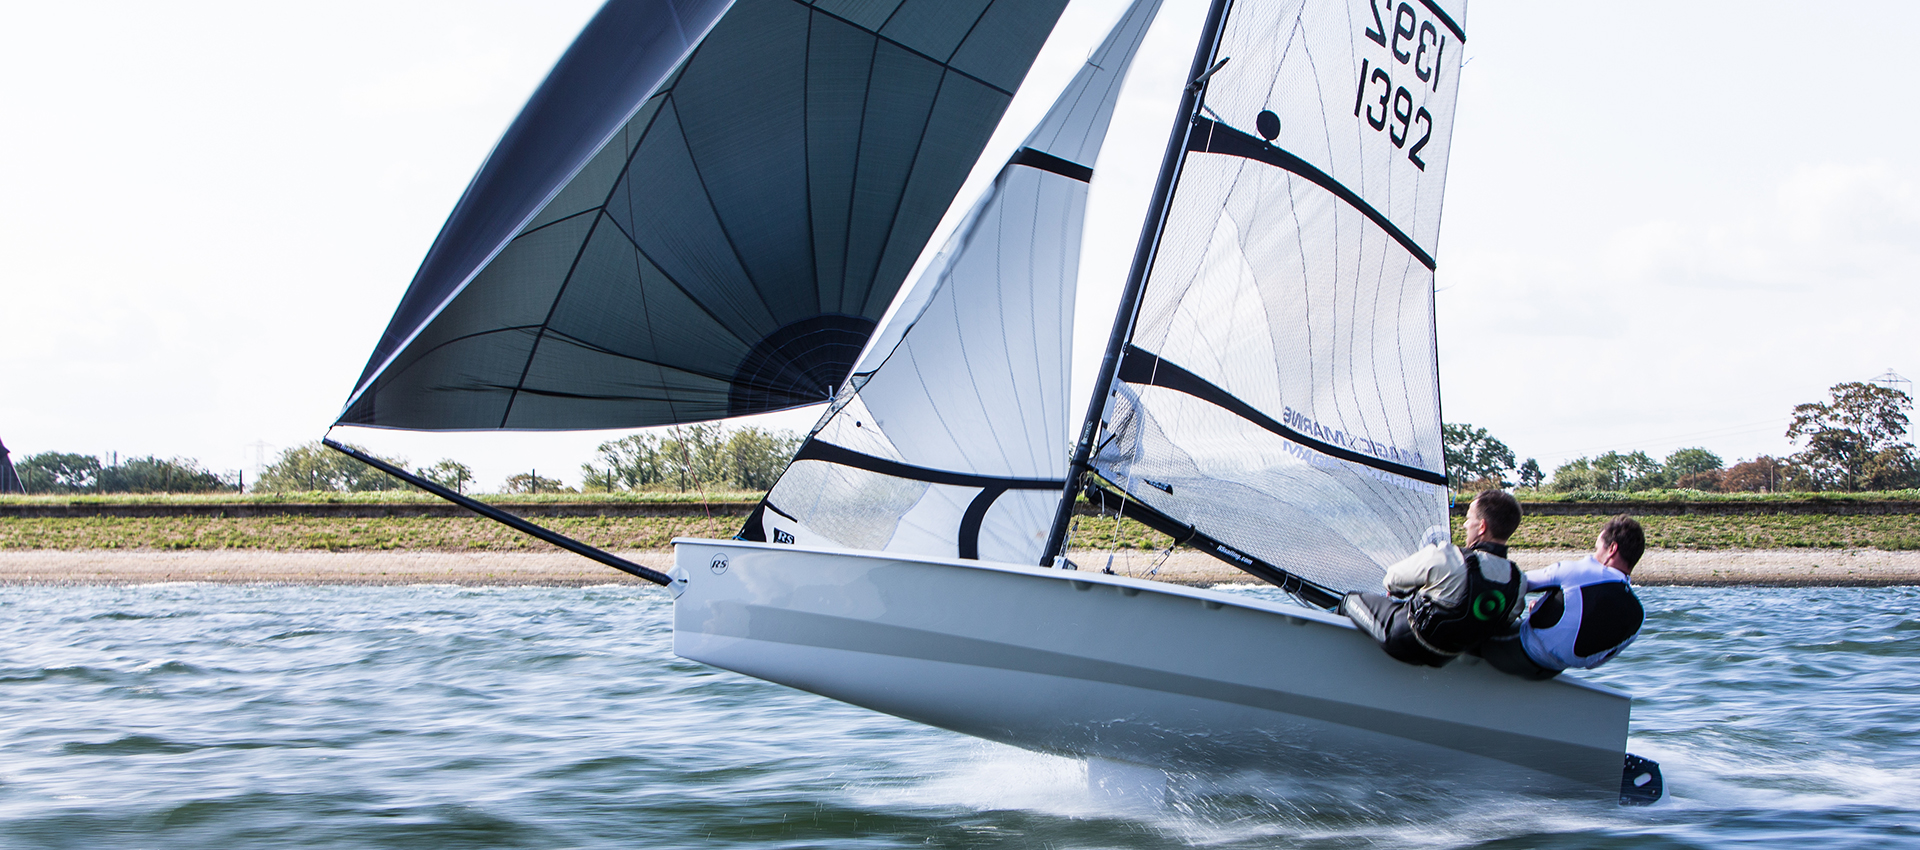 RS400 – The modern classic – one of the first RS boats and a thriving, double-handed class